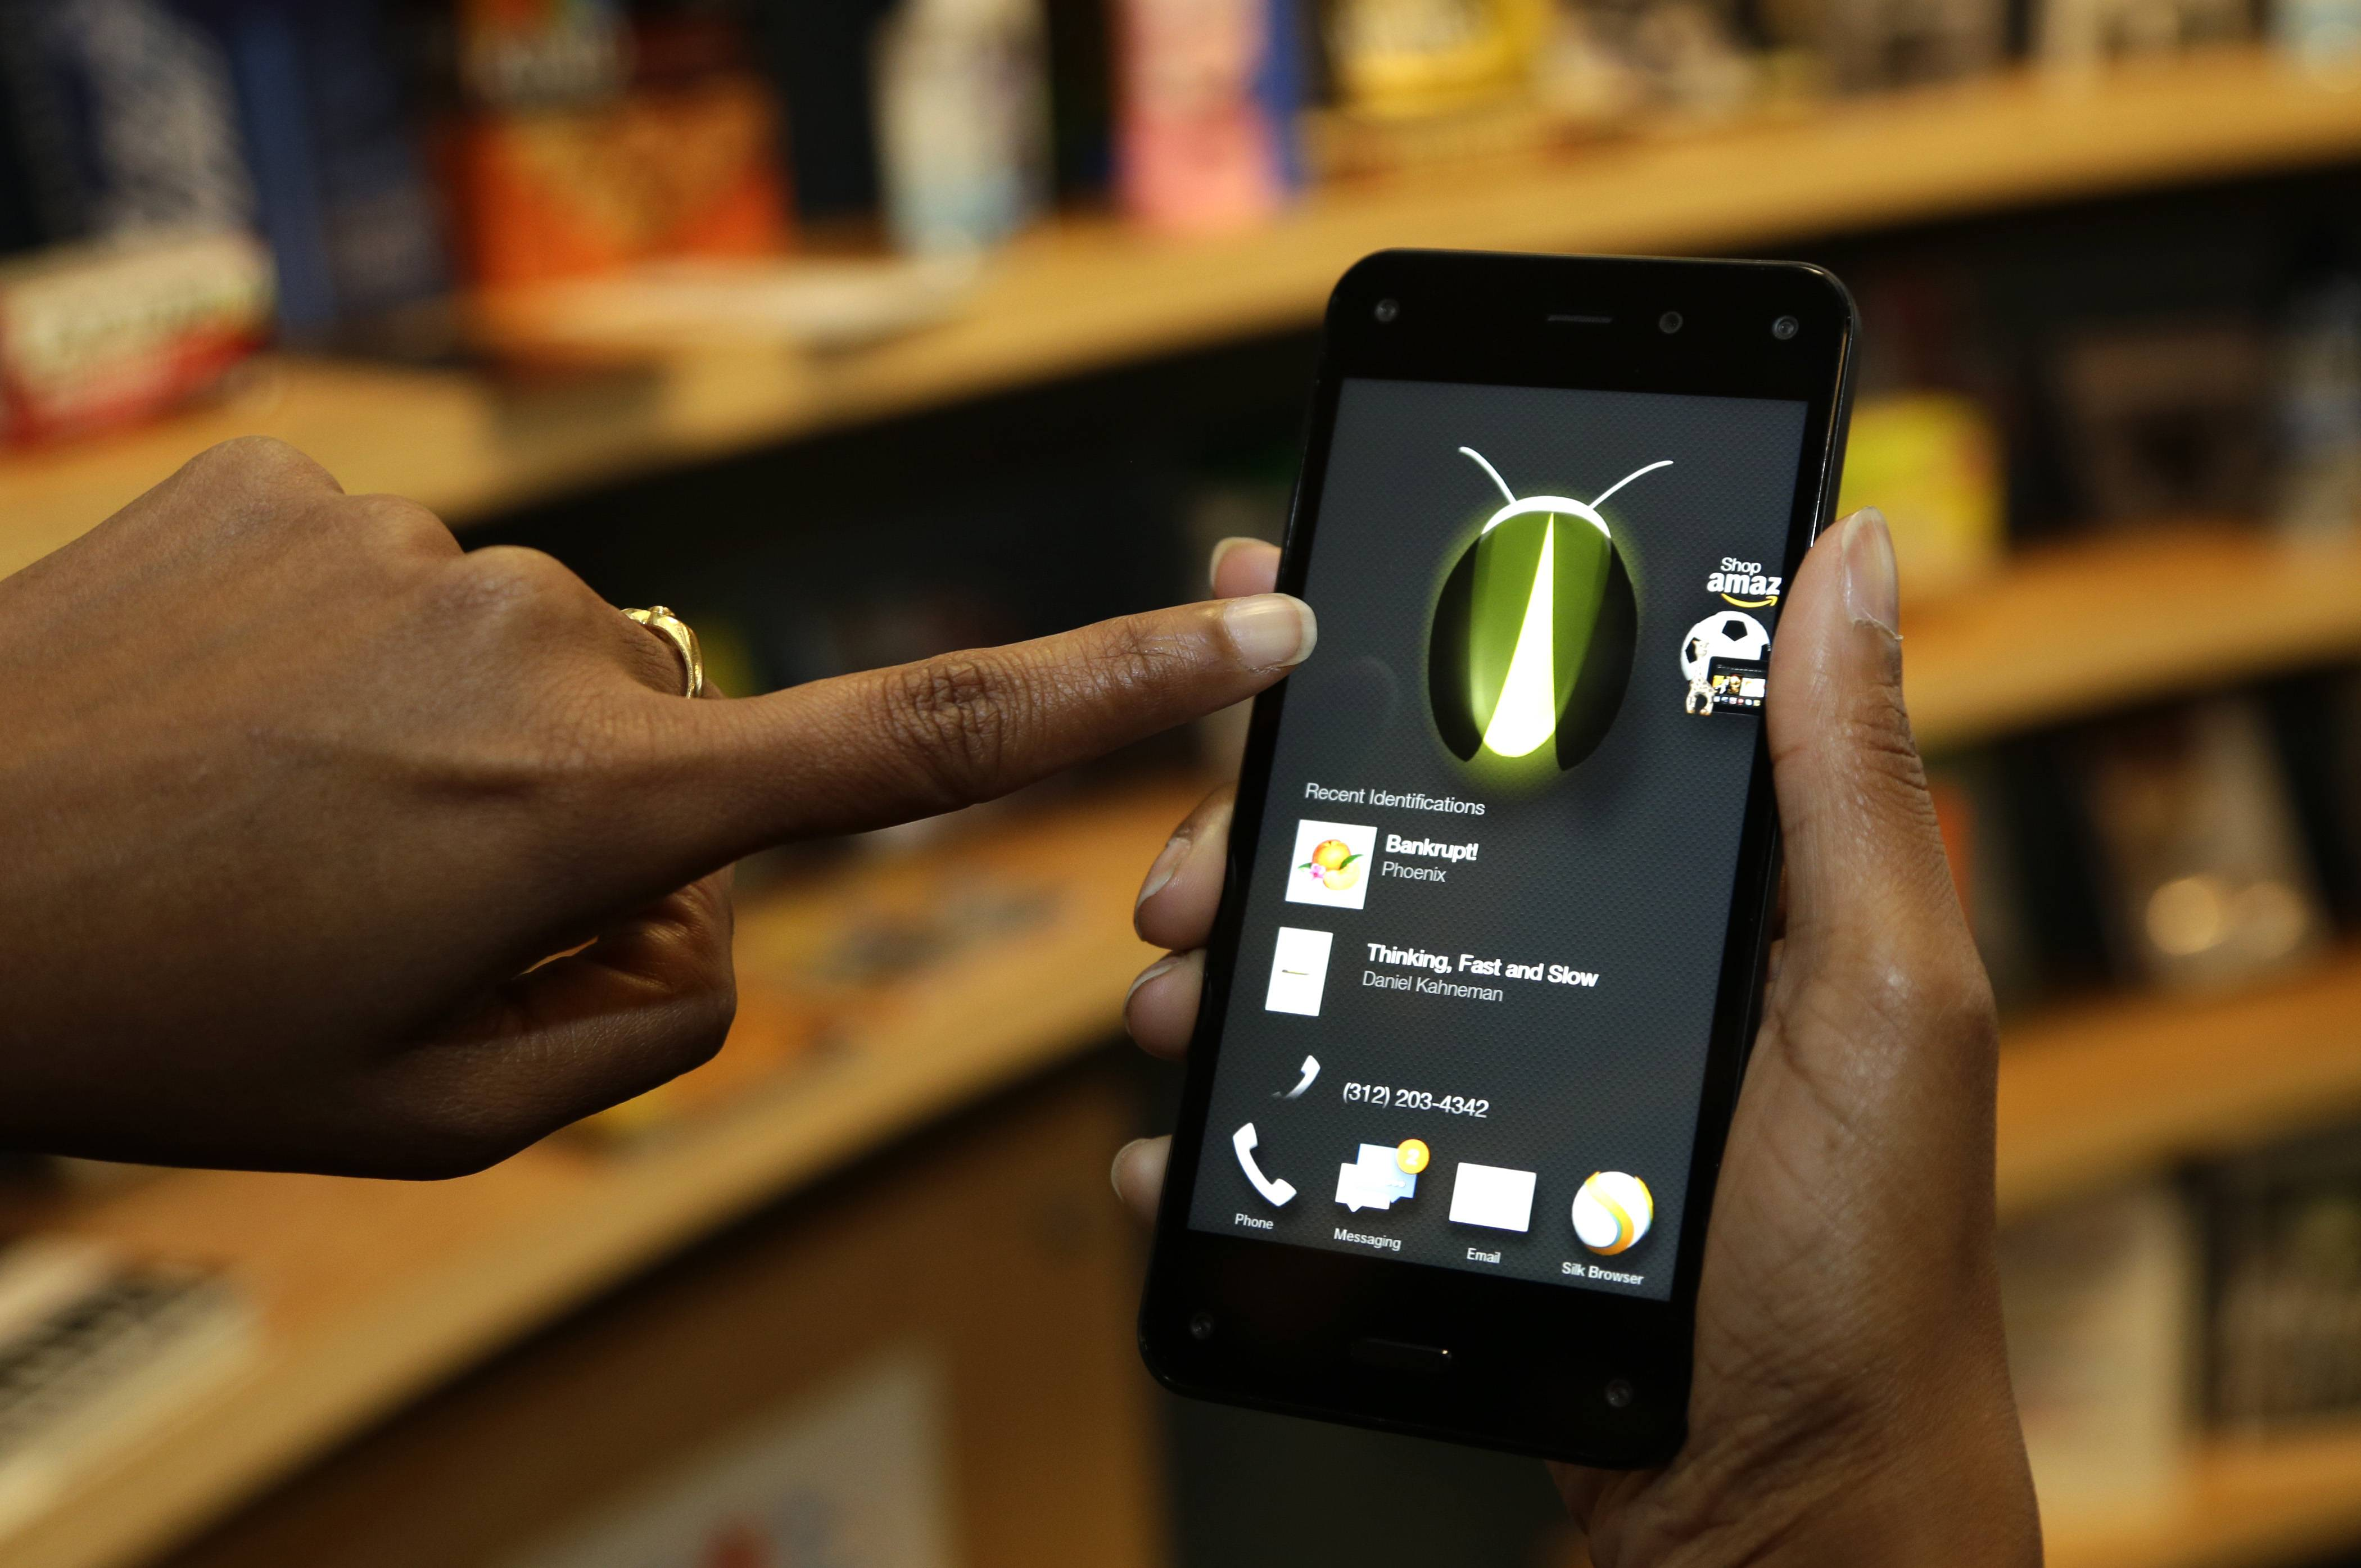 The new Amazon Fire Phone's Firefly feature, which lets the user take a photo of objects, numbers, artwork or books and have the phone recognize the item, is demonstrated in Seattle. Firefly also can recognize songs, TV shows, and movies.